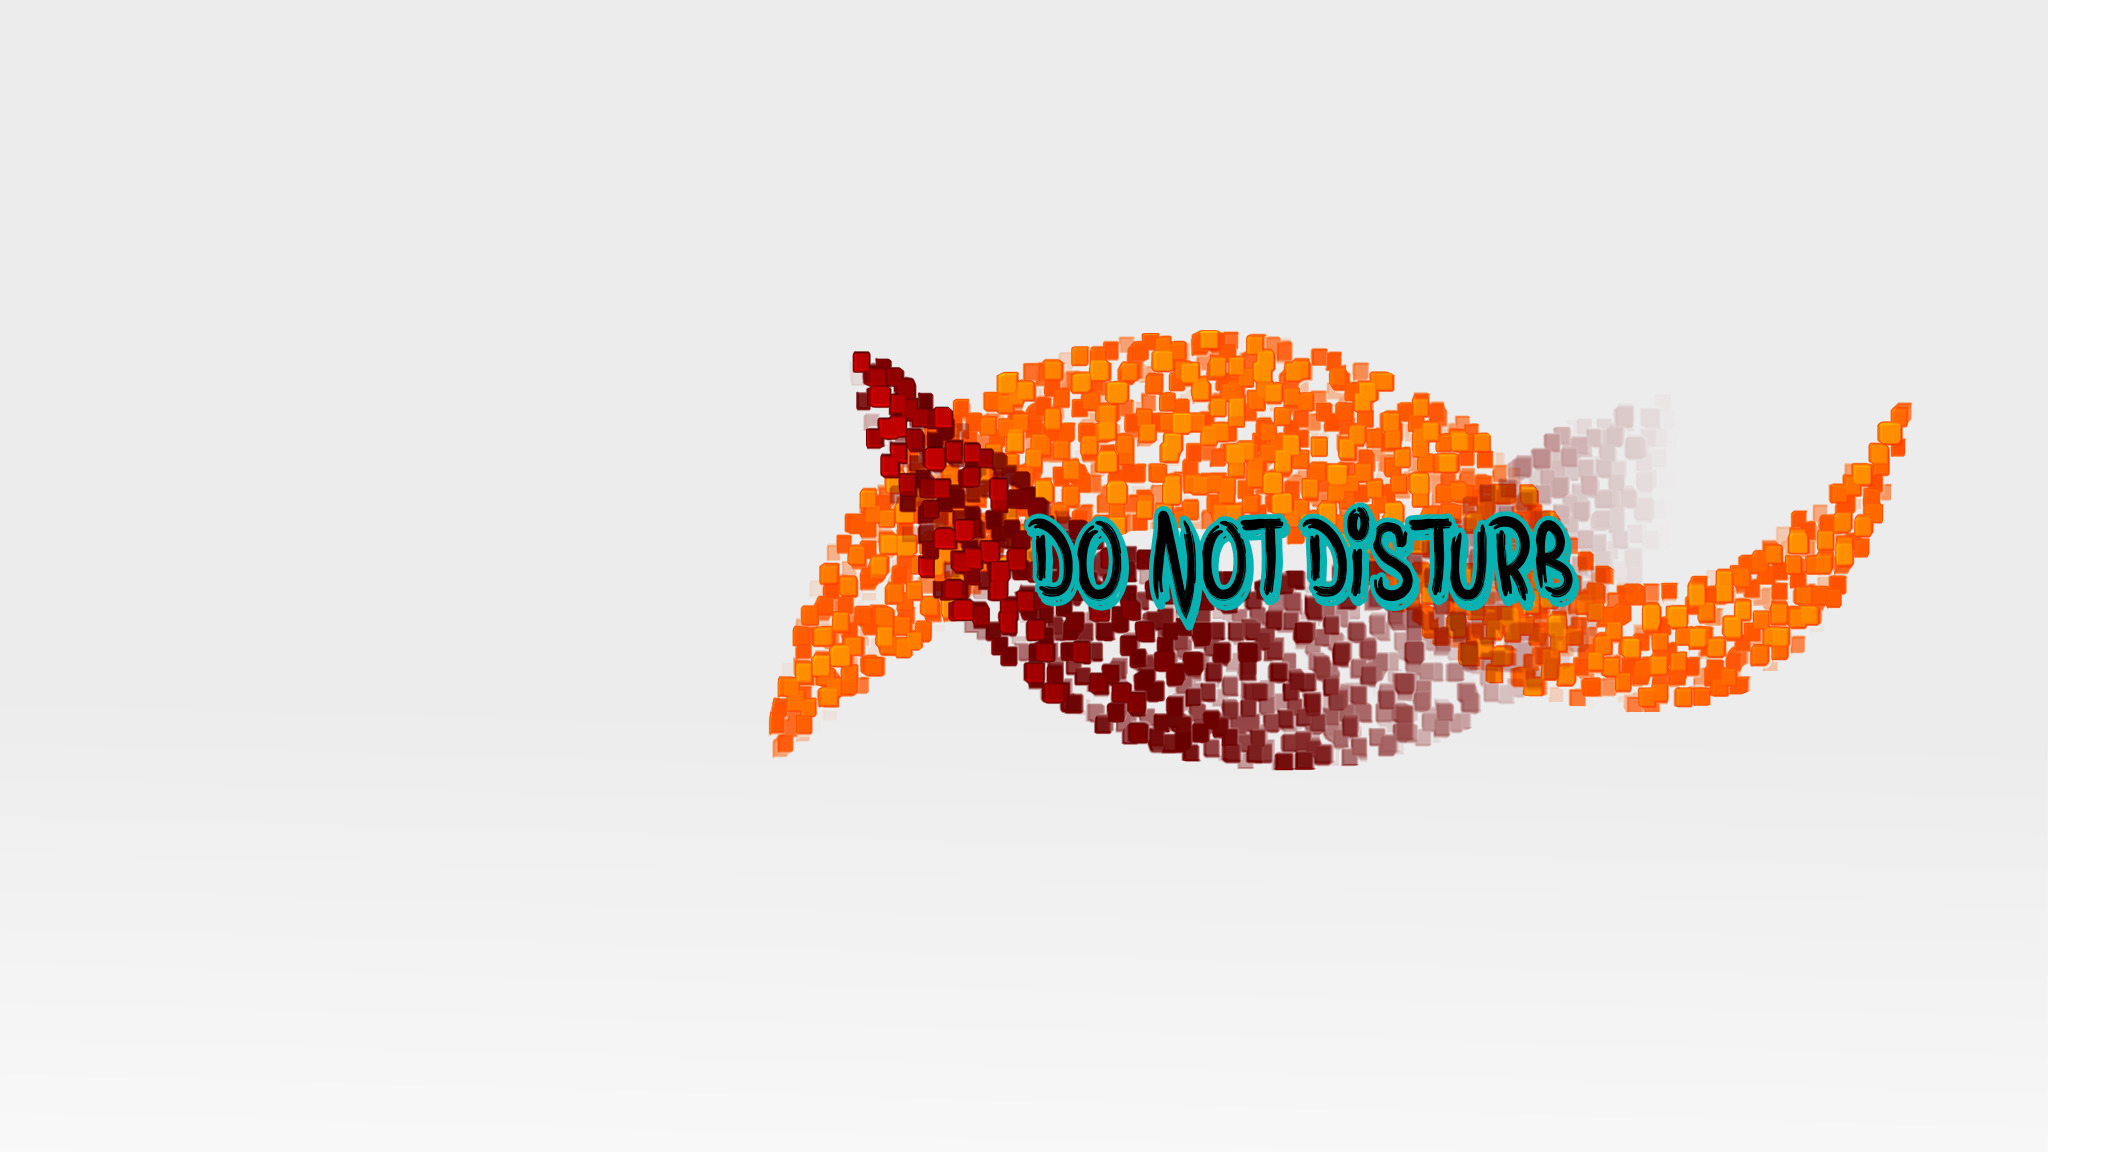 @doo_not_disturb Cover Image